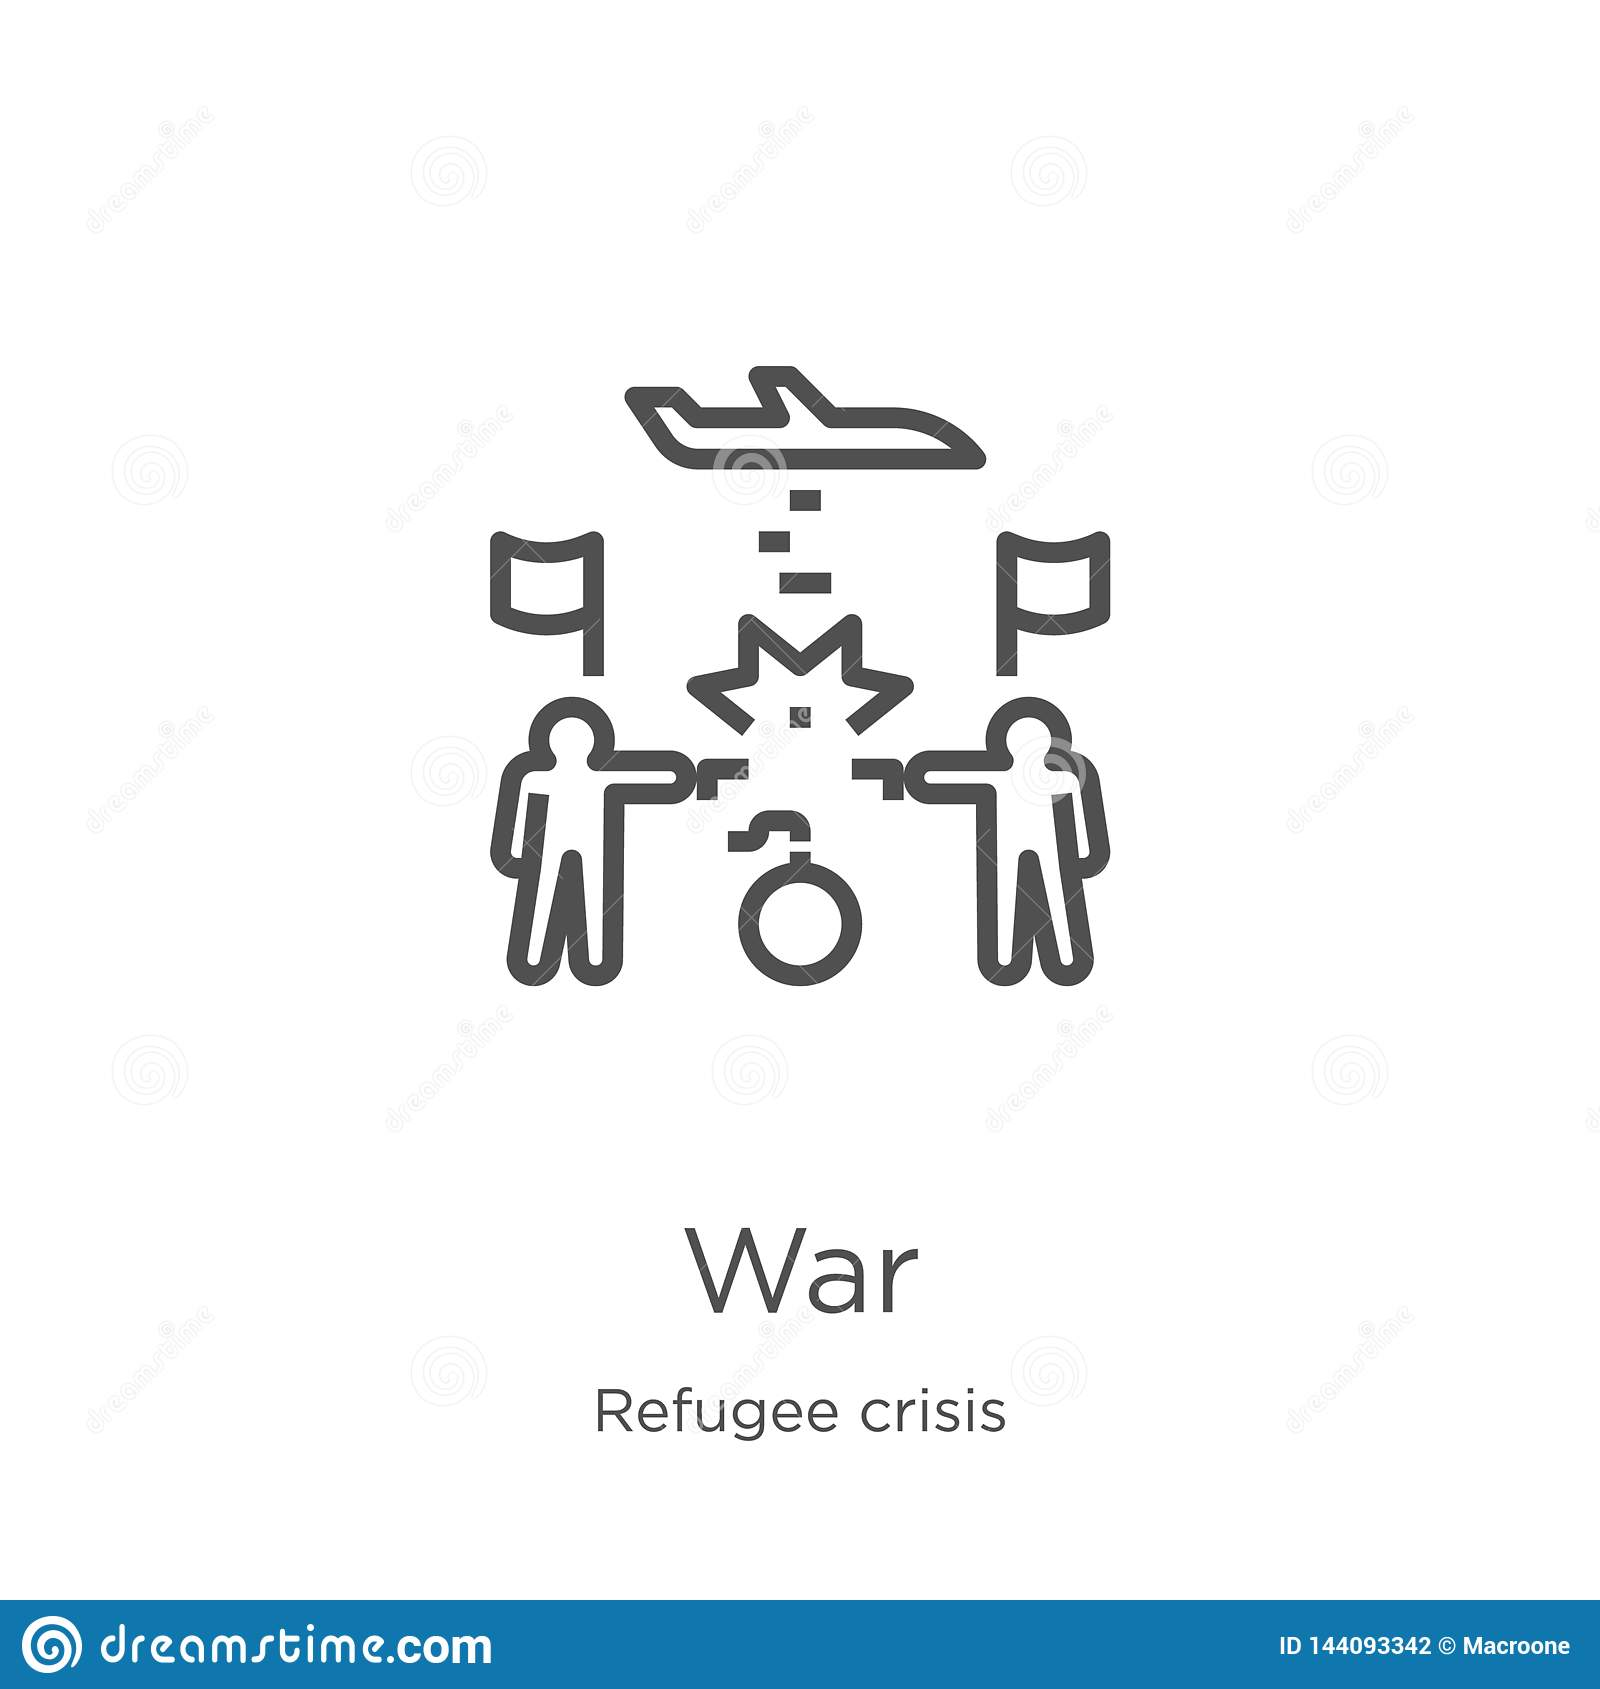 war icon vector from refugee crisis collection. Thin line war outline icon vector illustration. Outline, thin line war icon for